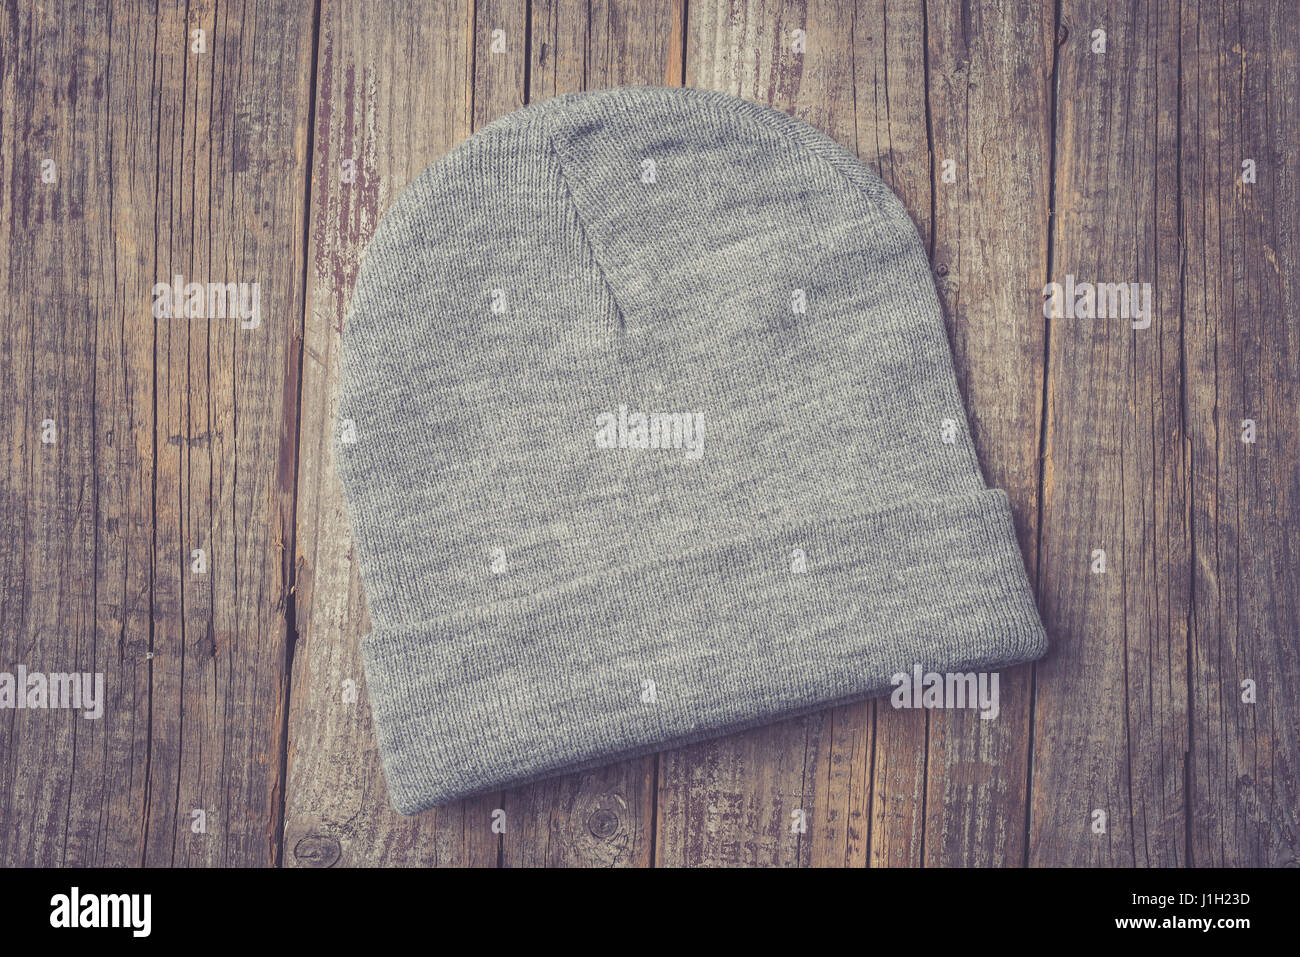 Winter cap on an old wooden table. Close up - Stock Image